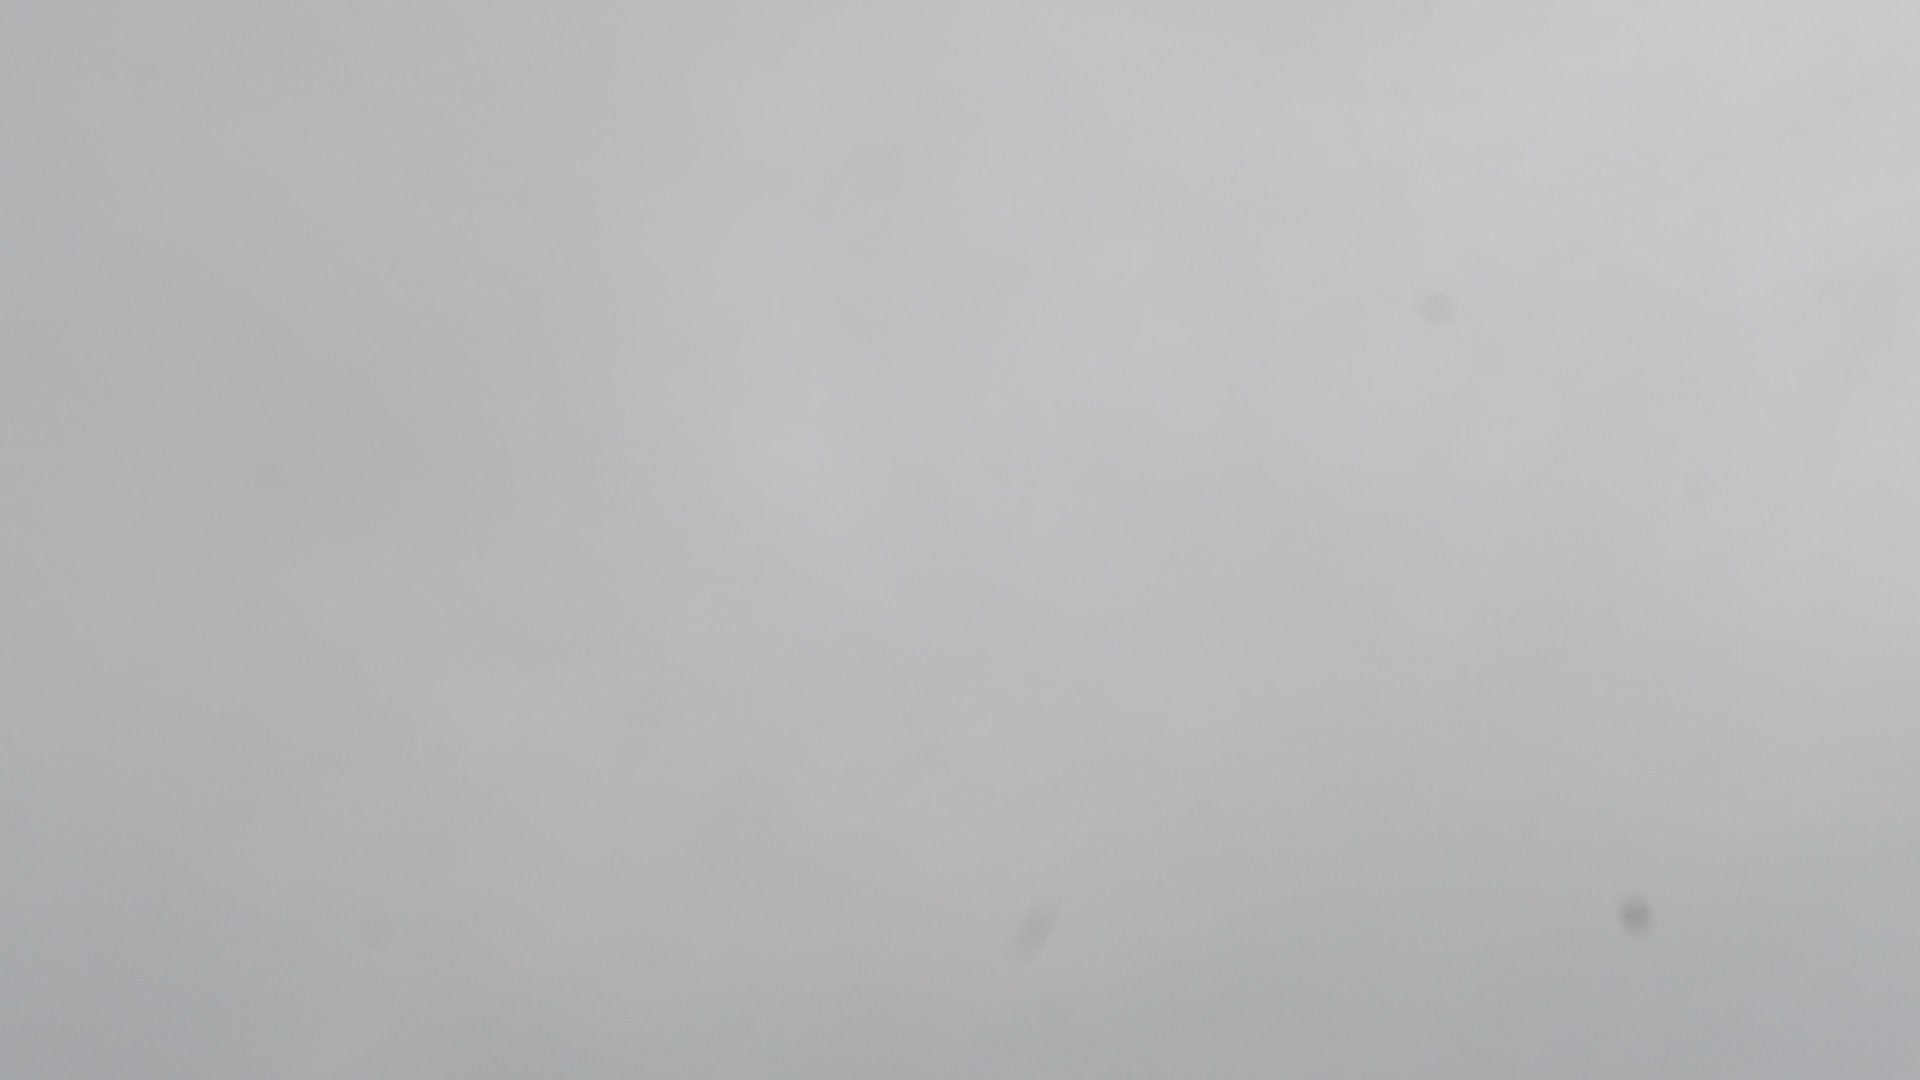 24/9/21 RAF GANG STALKING  (ZM405?) UNSAFE FLY REPORT METRO  21354, THEN MY HOME ALSO GROUND LEVEL 21355, 21356.